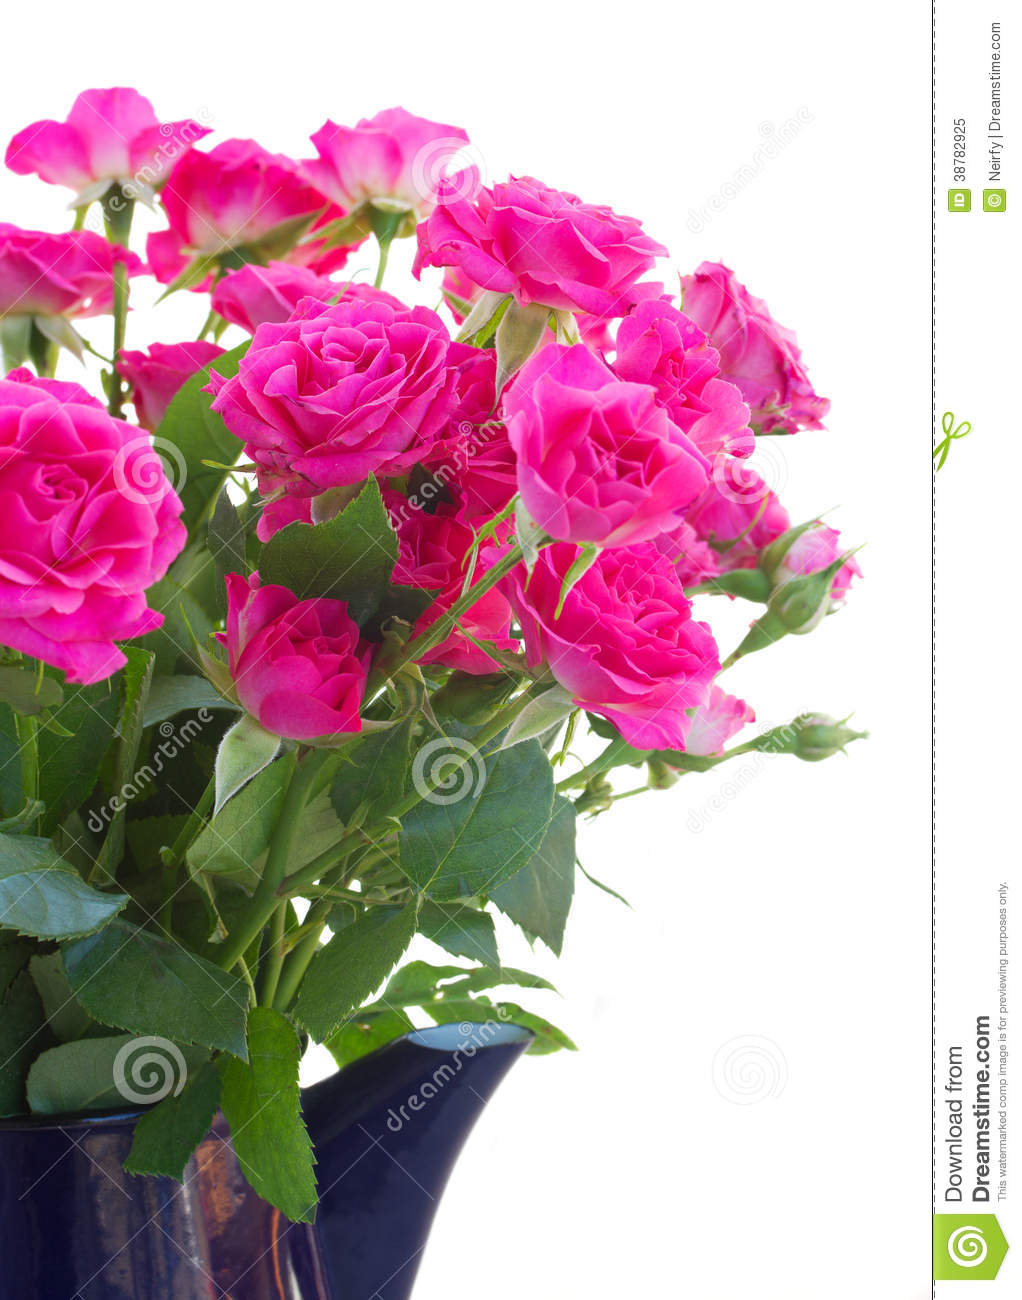 Bouquet of blossoming pink roses